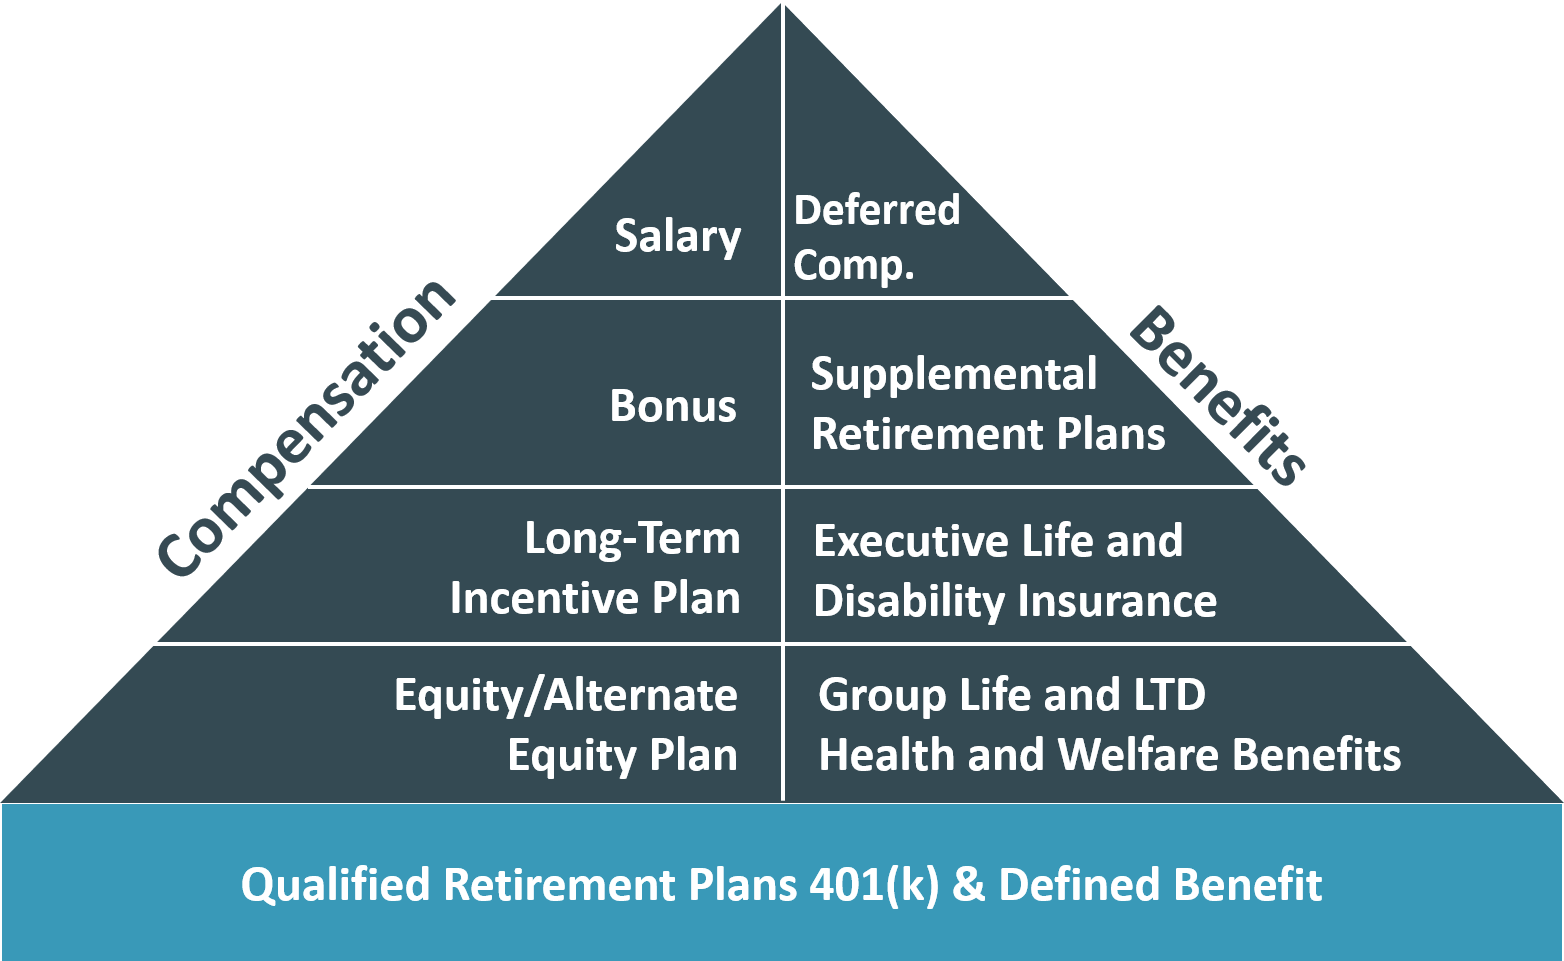 Exec Compensation Benefits Package Pyramid